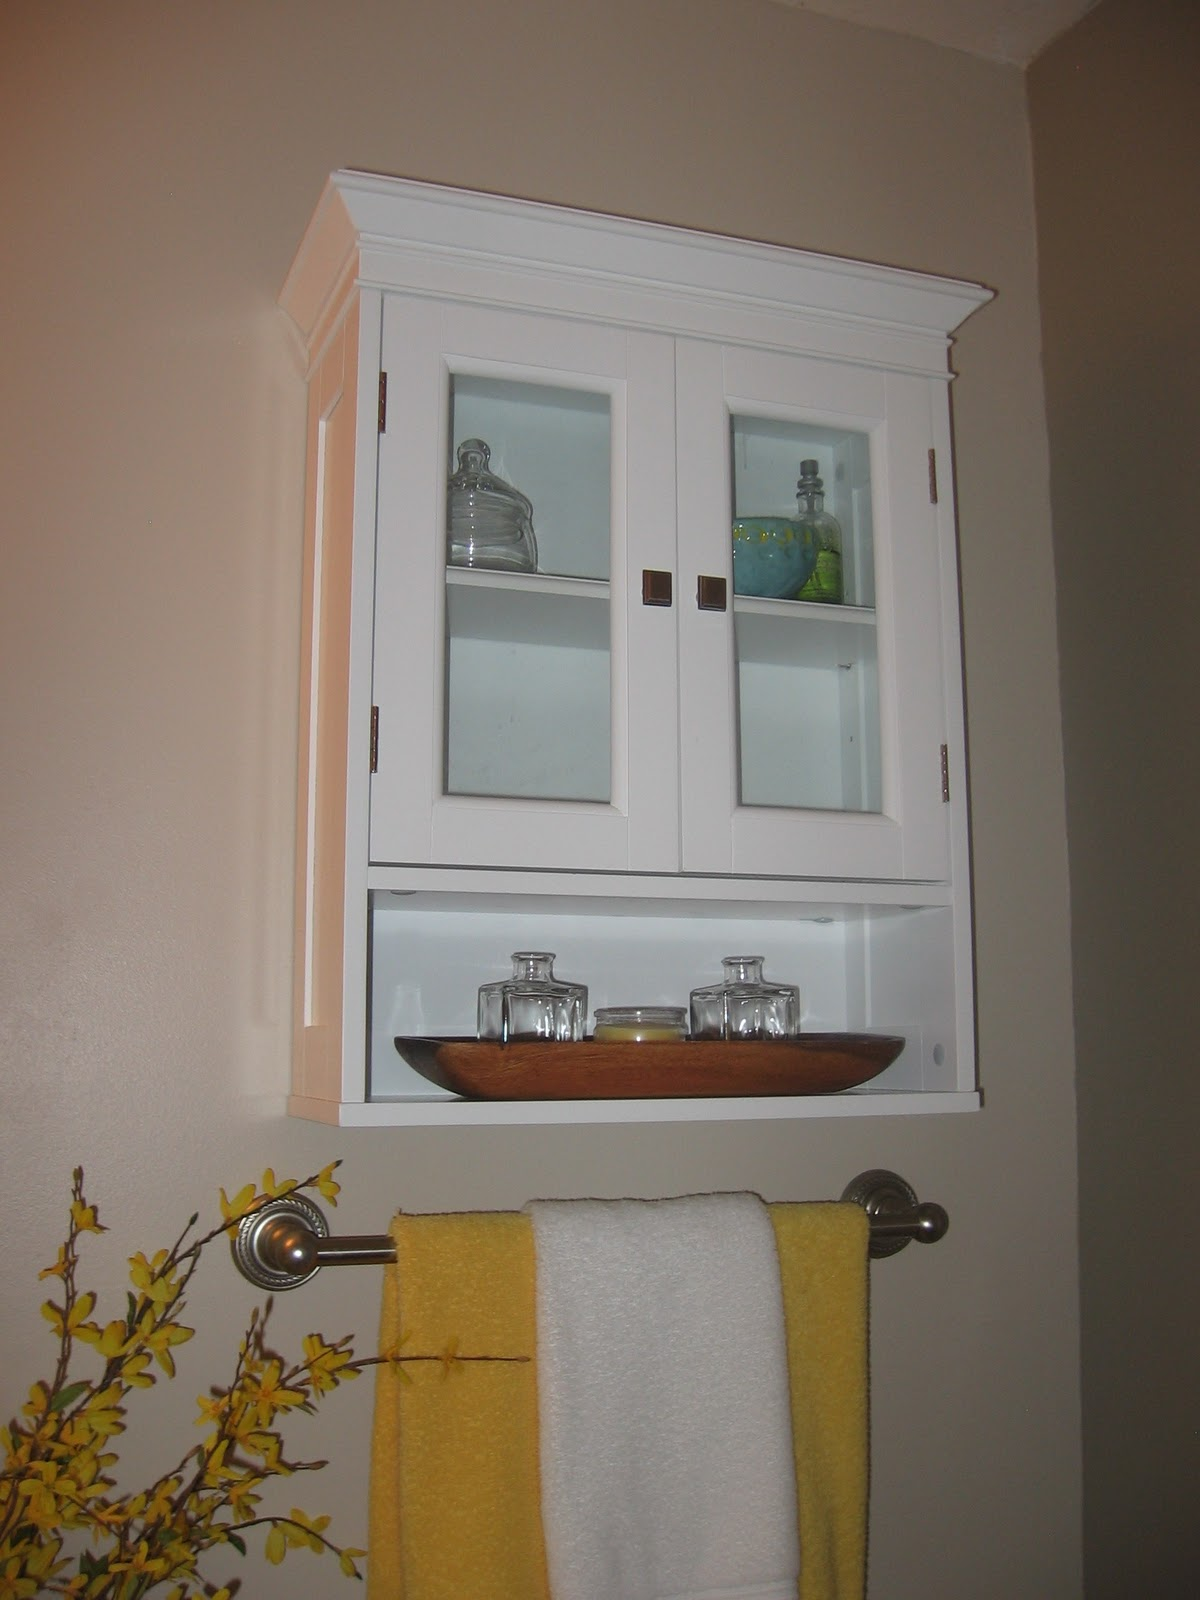 The delectable home 31 days 25 bathroom wall cabinet for Bathroom cabinets above toilet